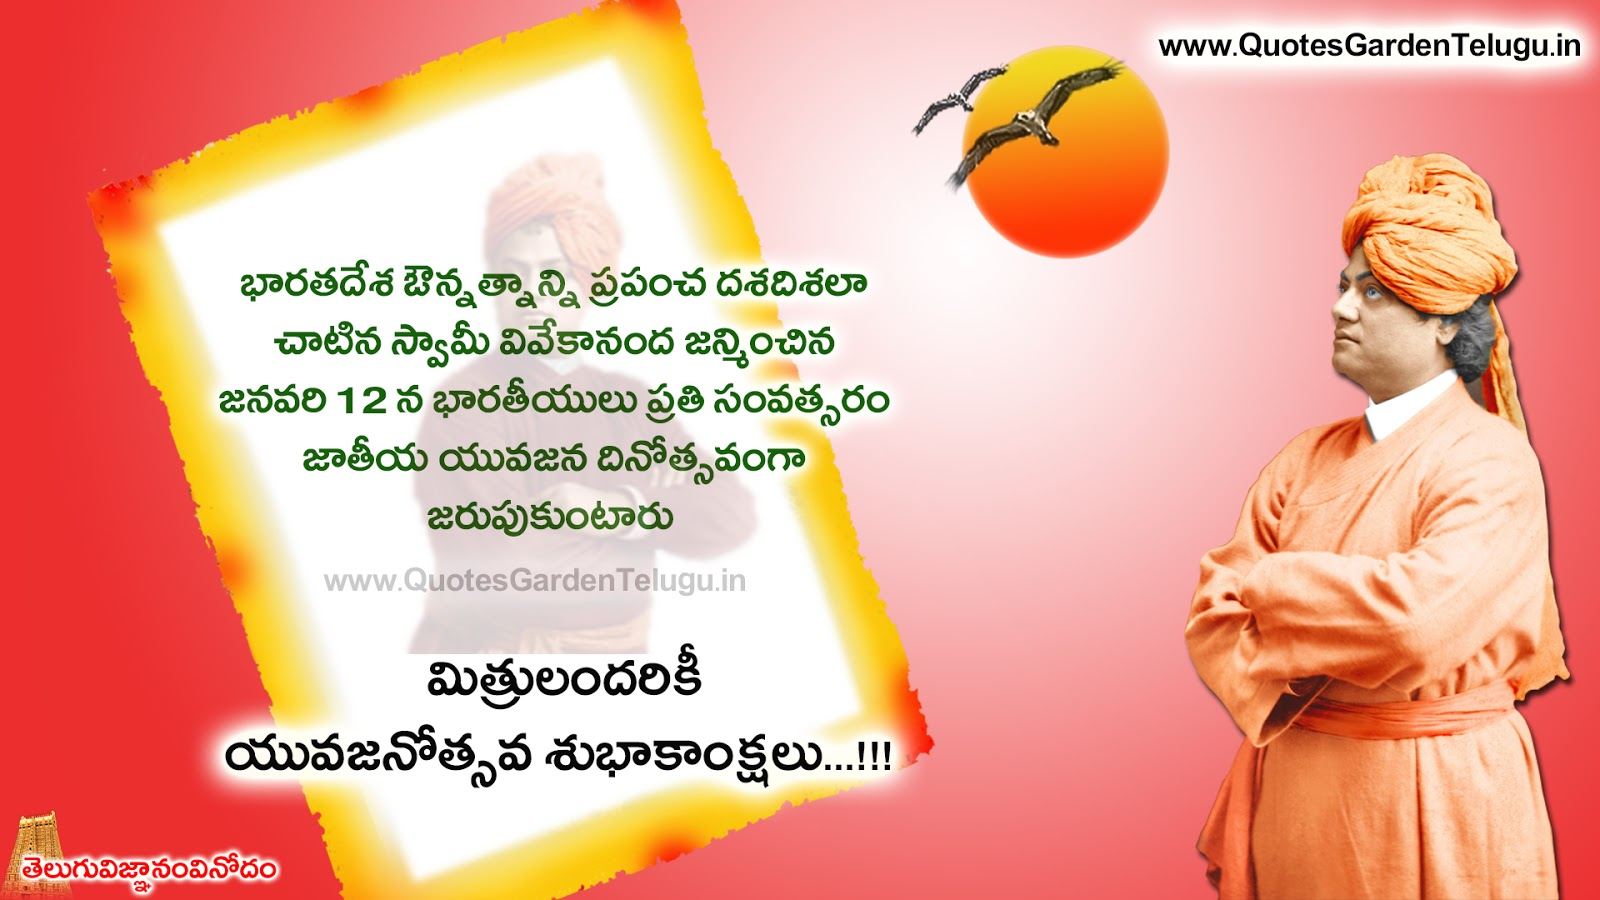 National youth day greetings images in telugu